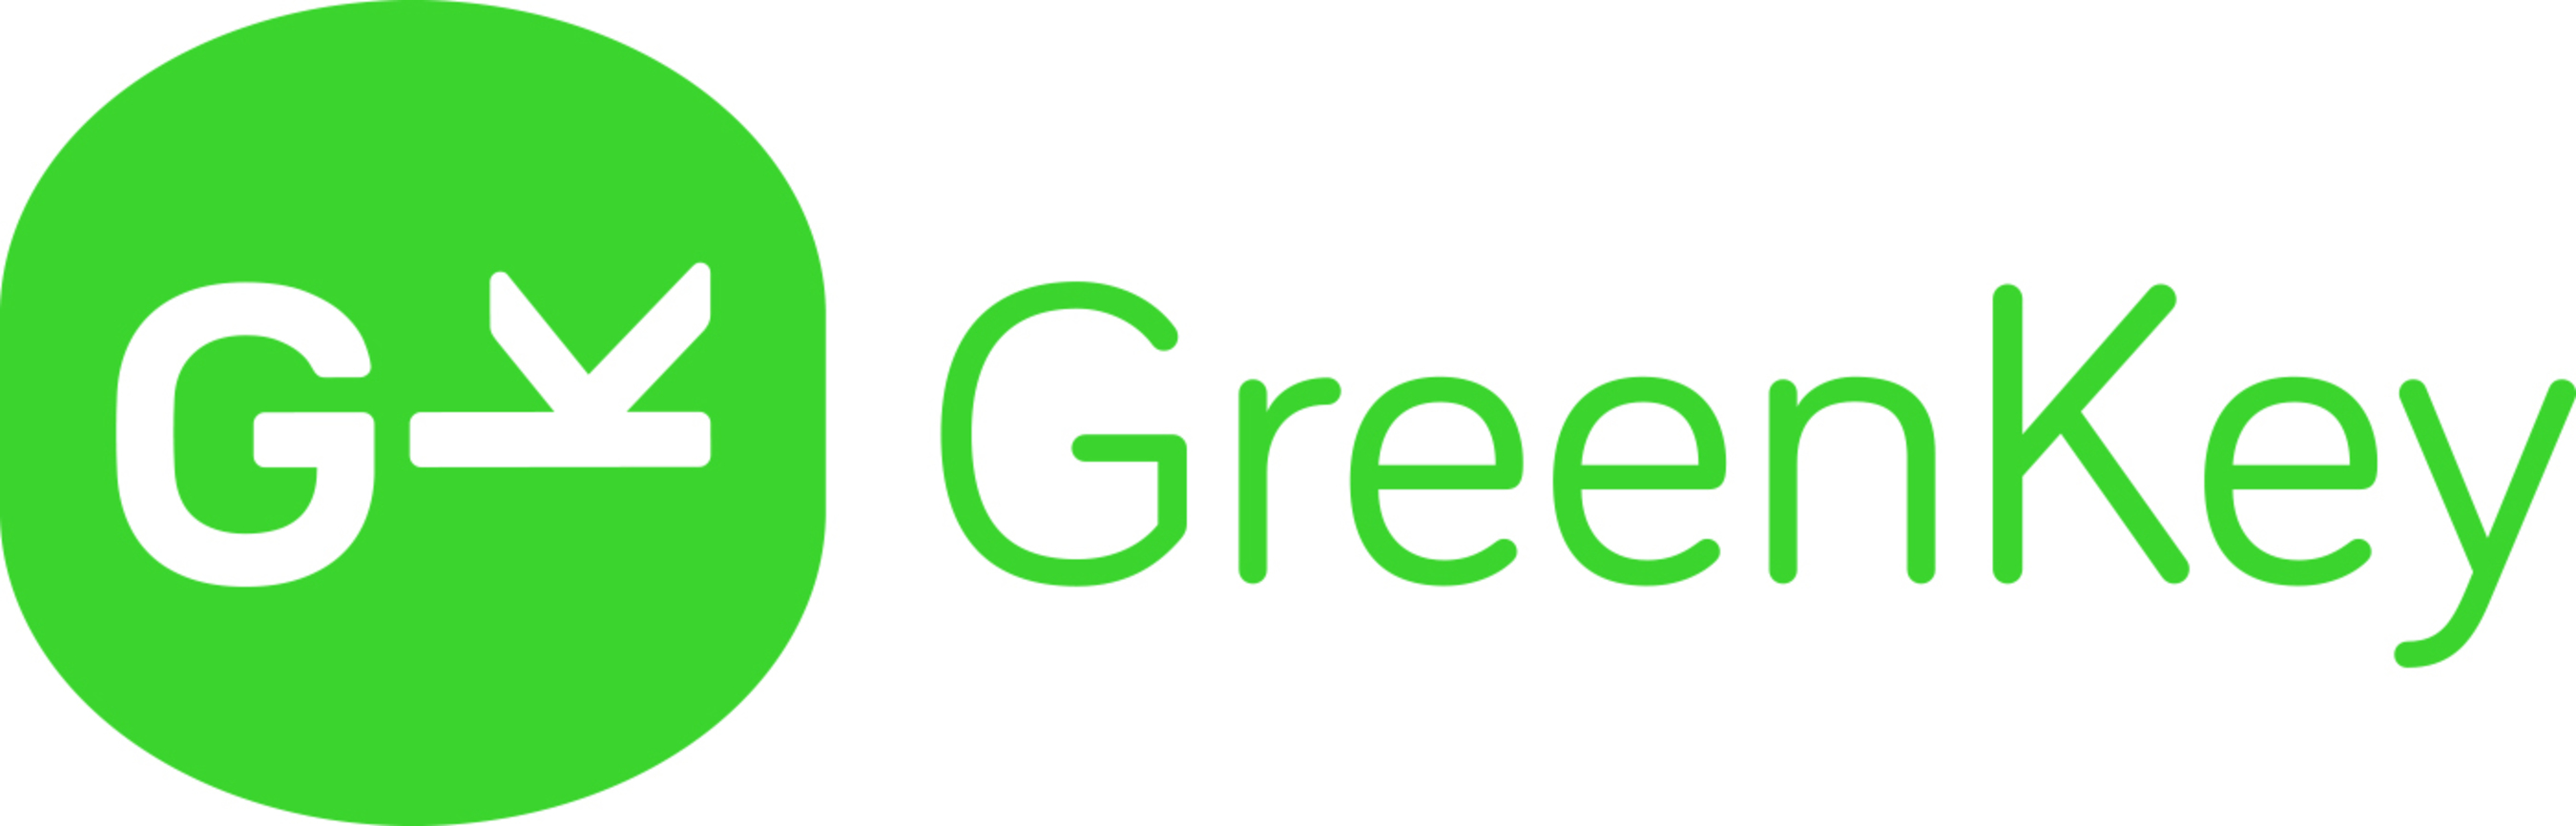 Green Key Technologies Appoints Paul Christensen as CEO